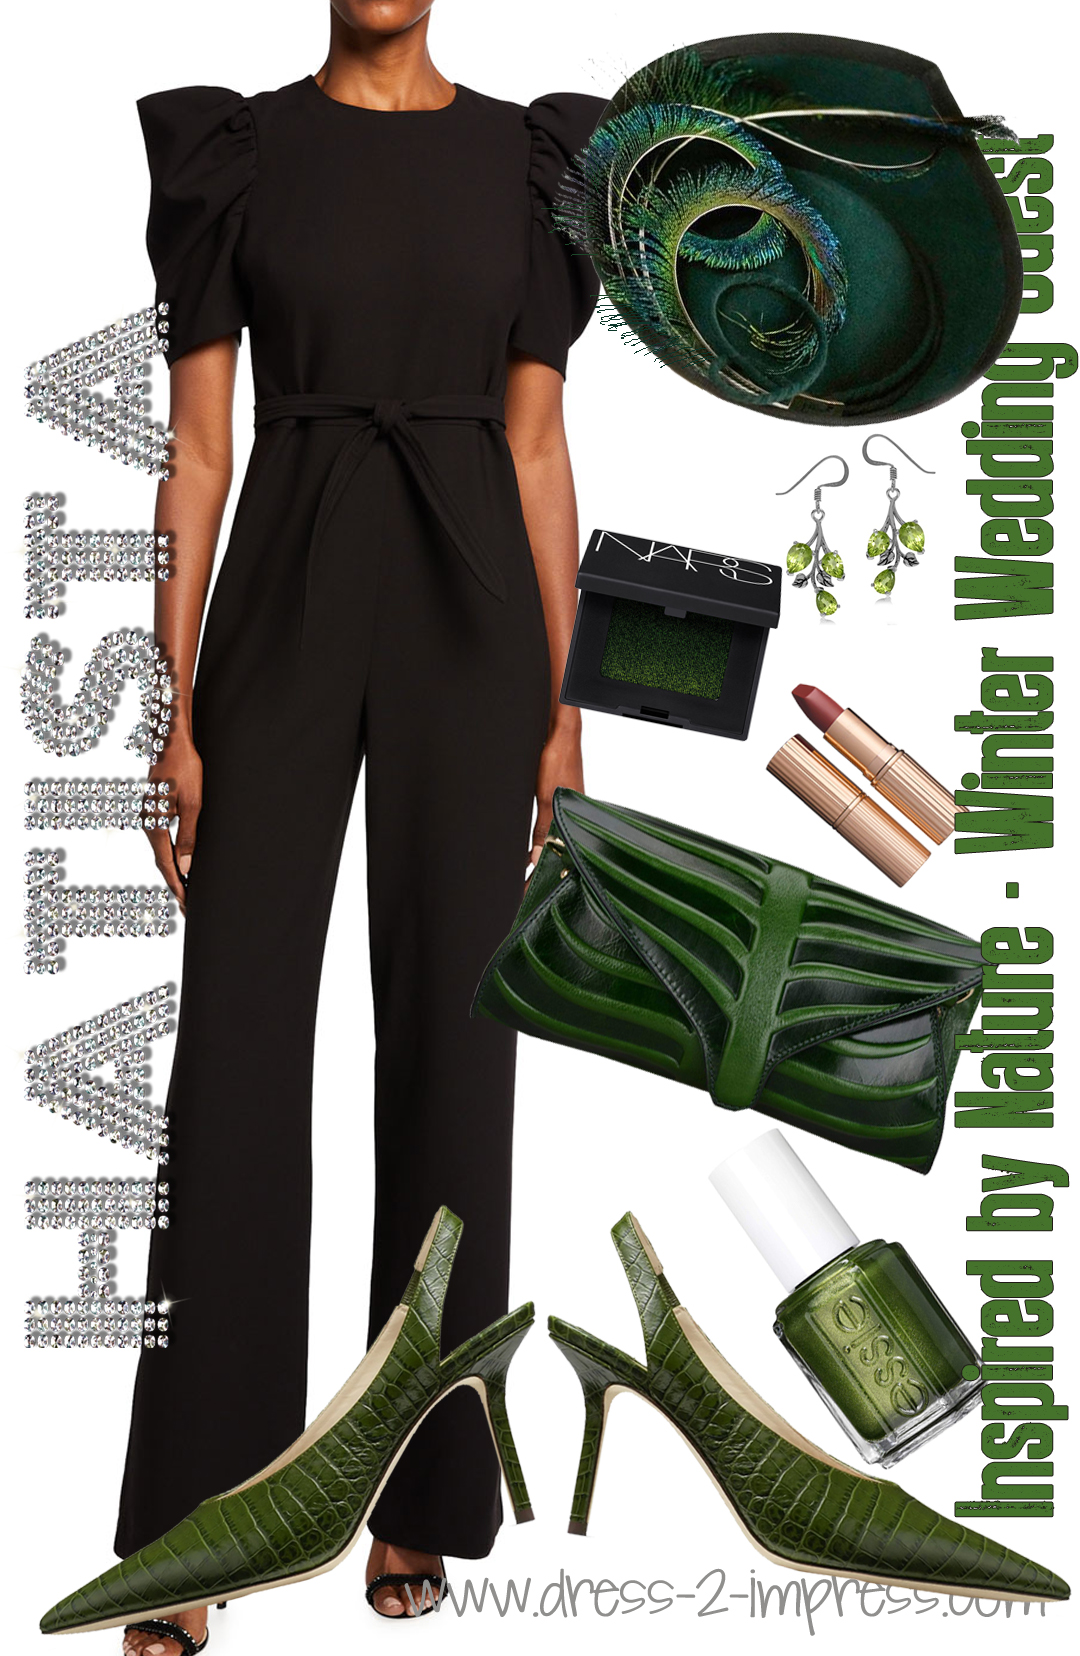 How to Wear Green. What to wear with Dark Green. Autumn Wedding Guest Outfits. Fall Wedding outfits. Peacock Feather Hats for Winter, Green and Black Clutch Bags, Autumn Fashion outfit ideas. Black Tadashi Shoji Dress. Little Black dress for Autumn outfits.